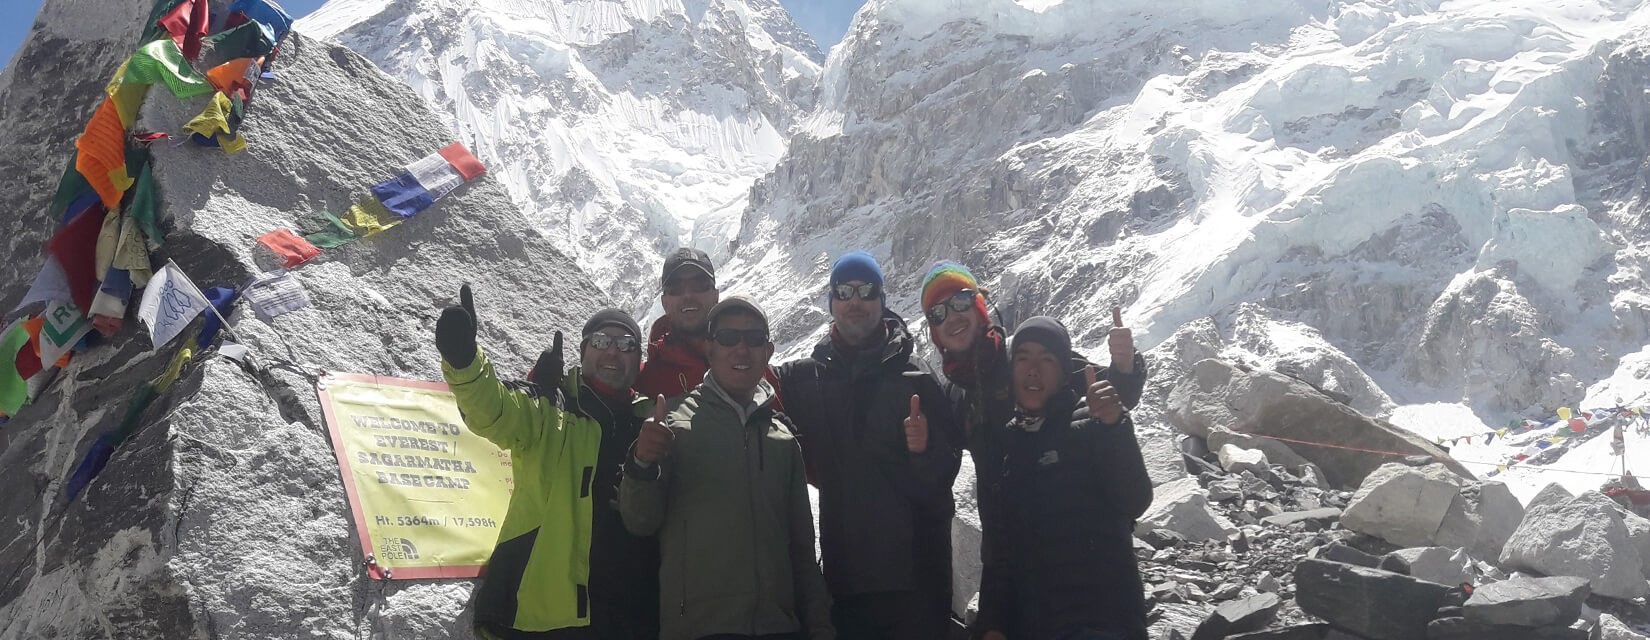 Everest Base Camp - EBC Trek